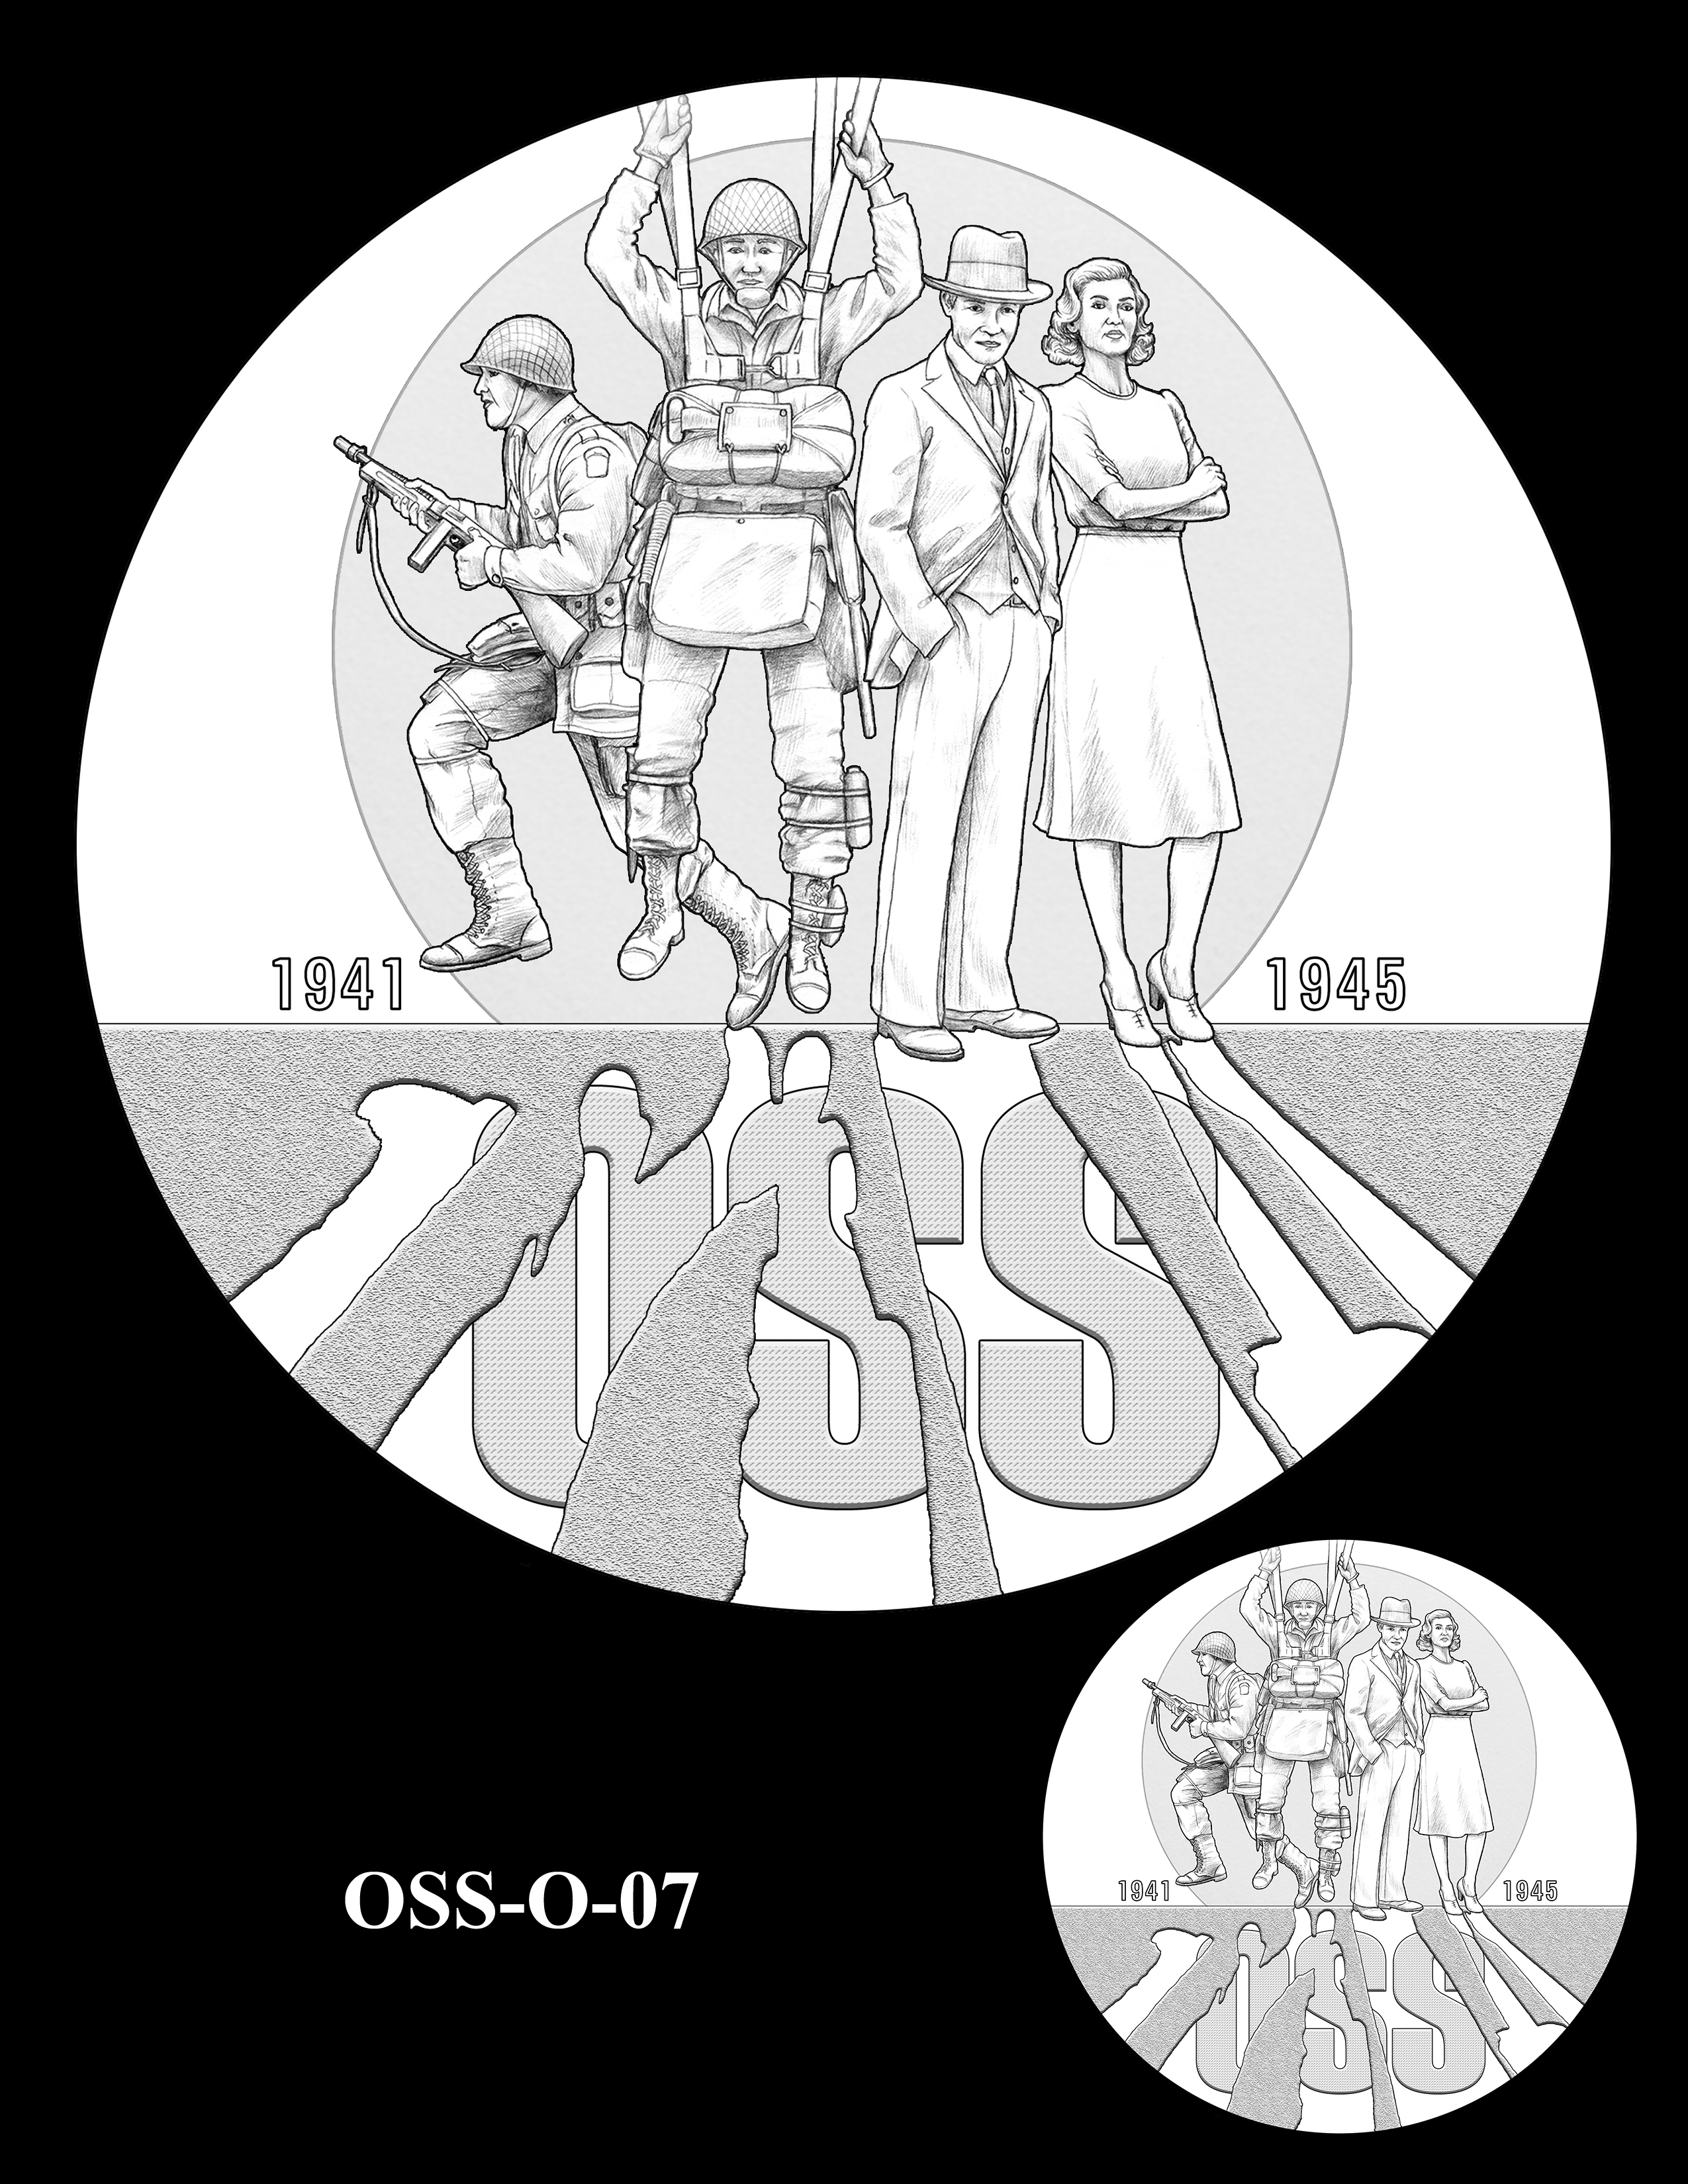 OSS-O-07 -- Office of Strategic Services Congressional Gold Medal